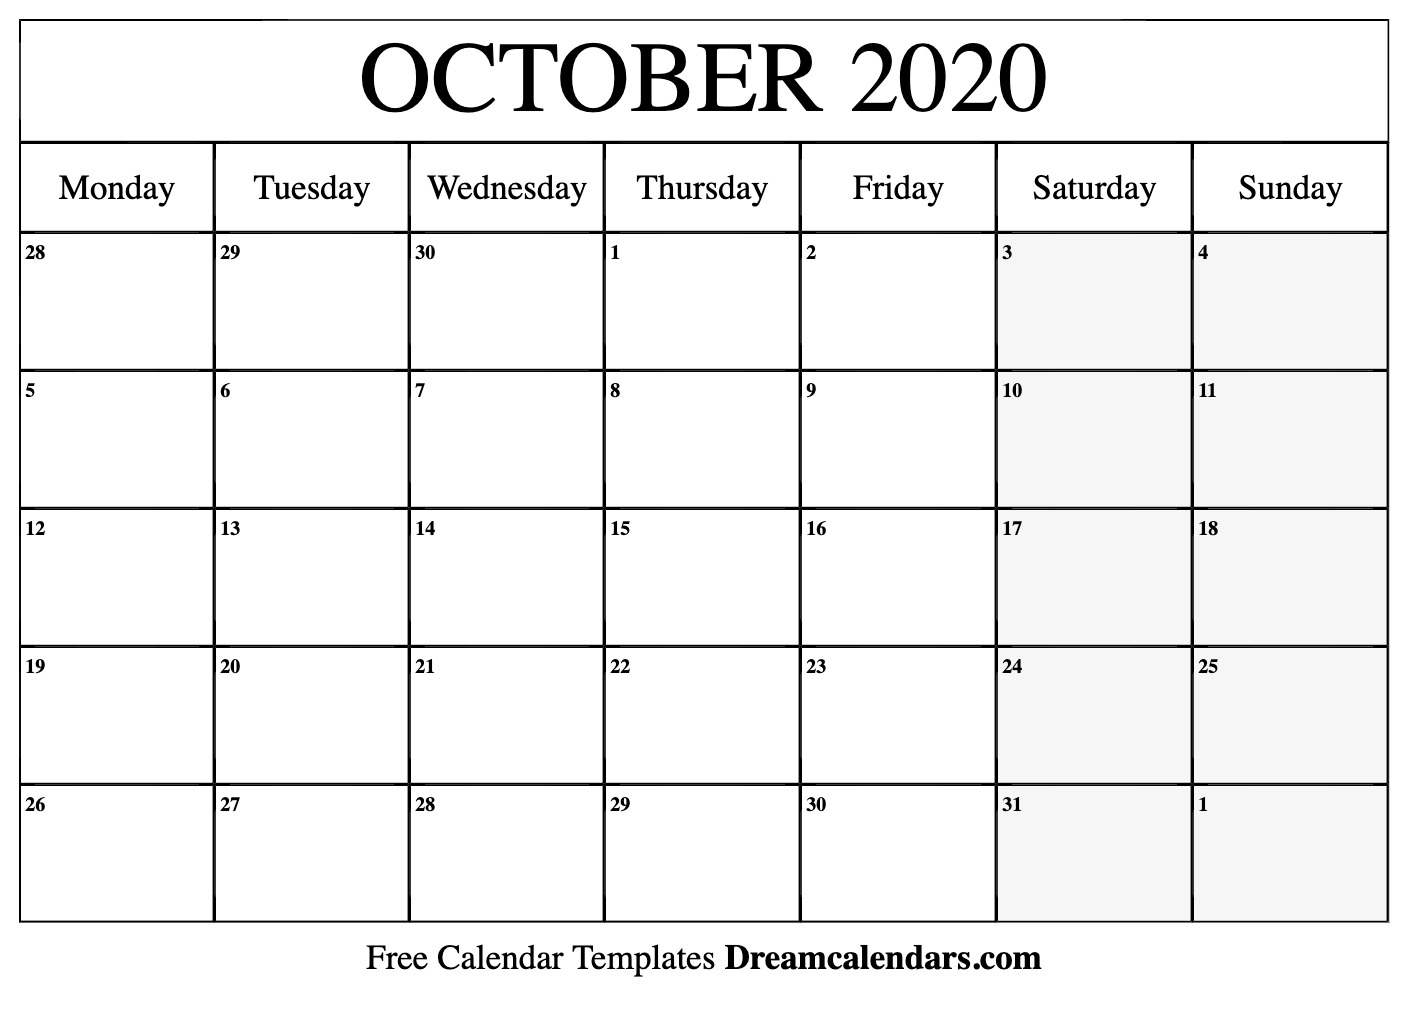 2020 Calendar October Ko fi   Printable October 2020 Calendar   Ko fi ❤   Where